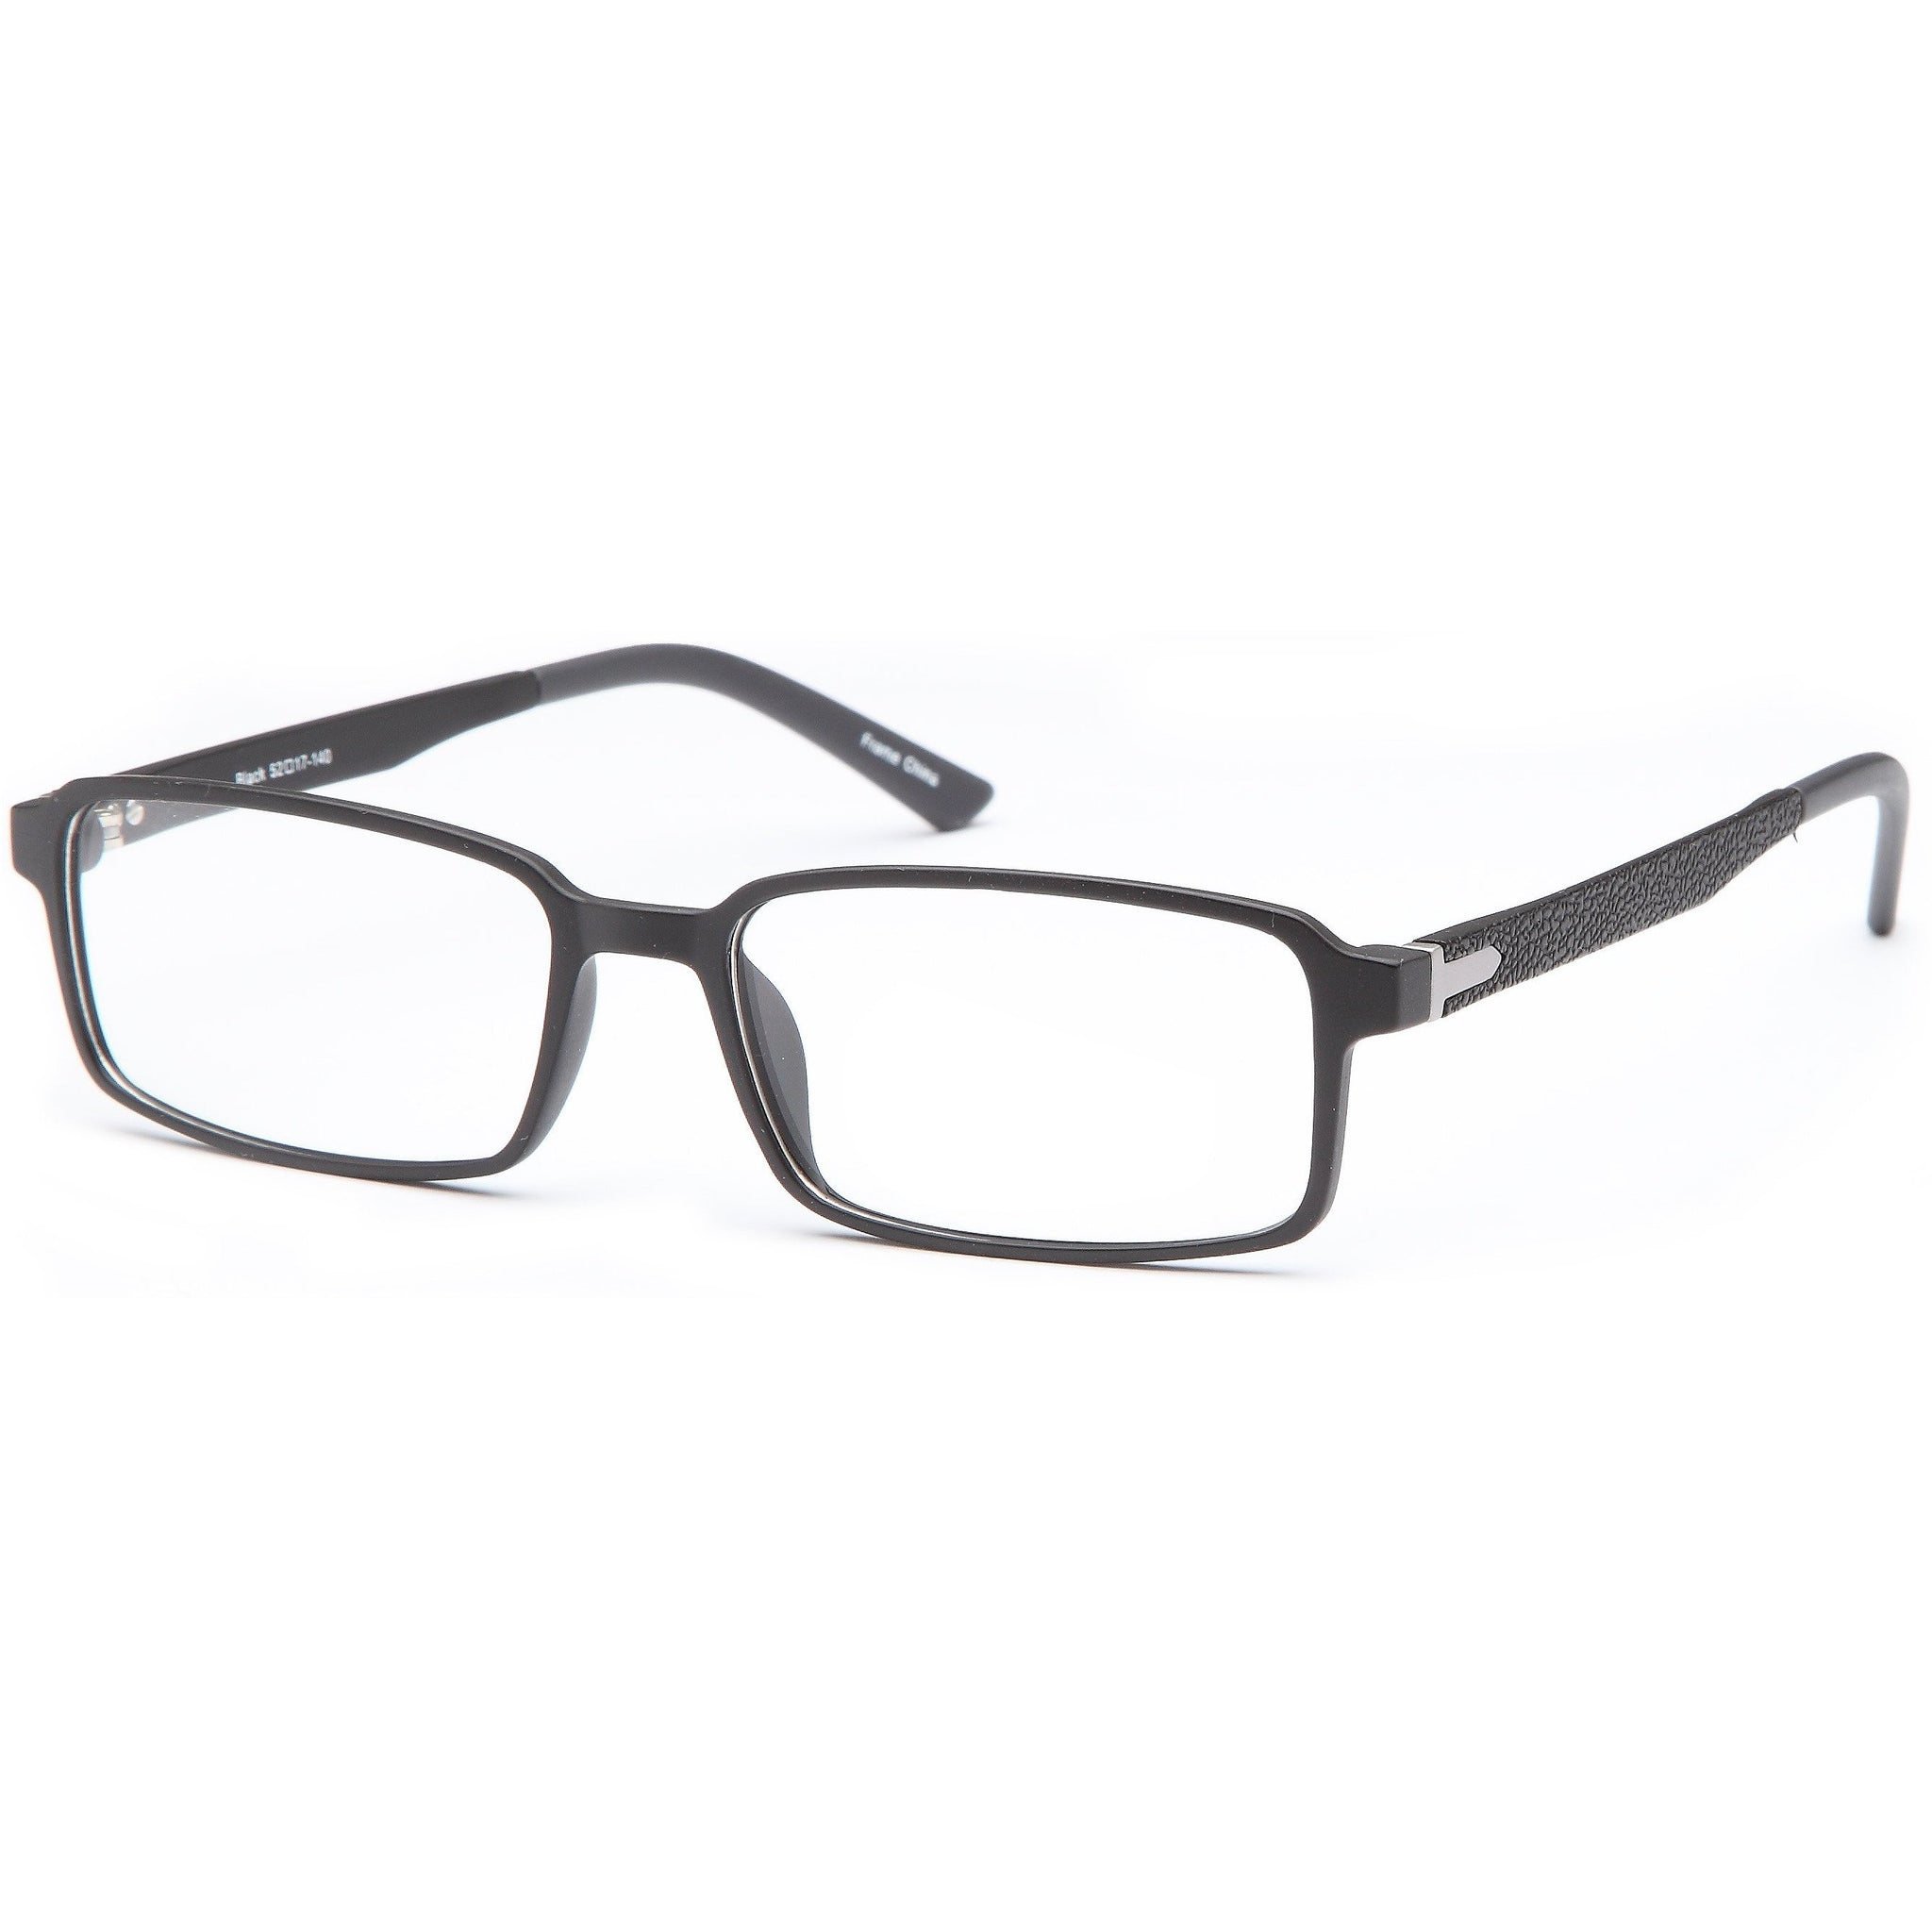 GEN Y Prescription Glasses ADAM Eyeglasses Frame